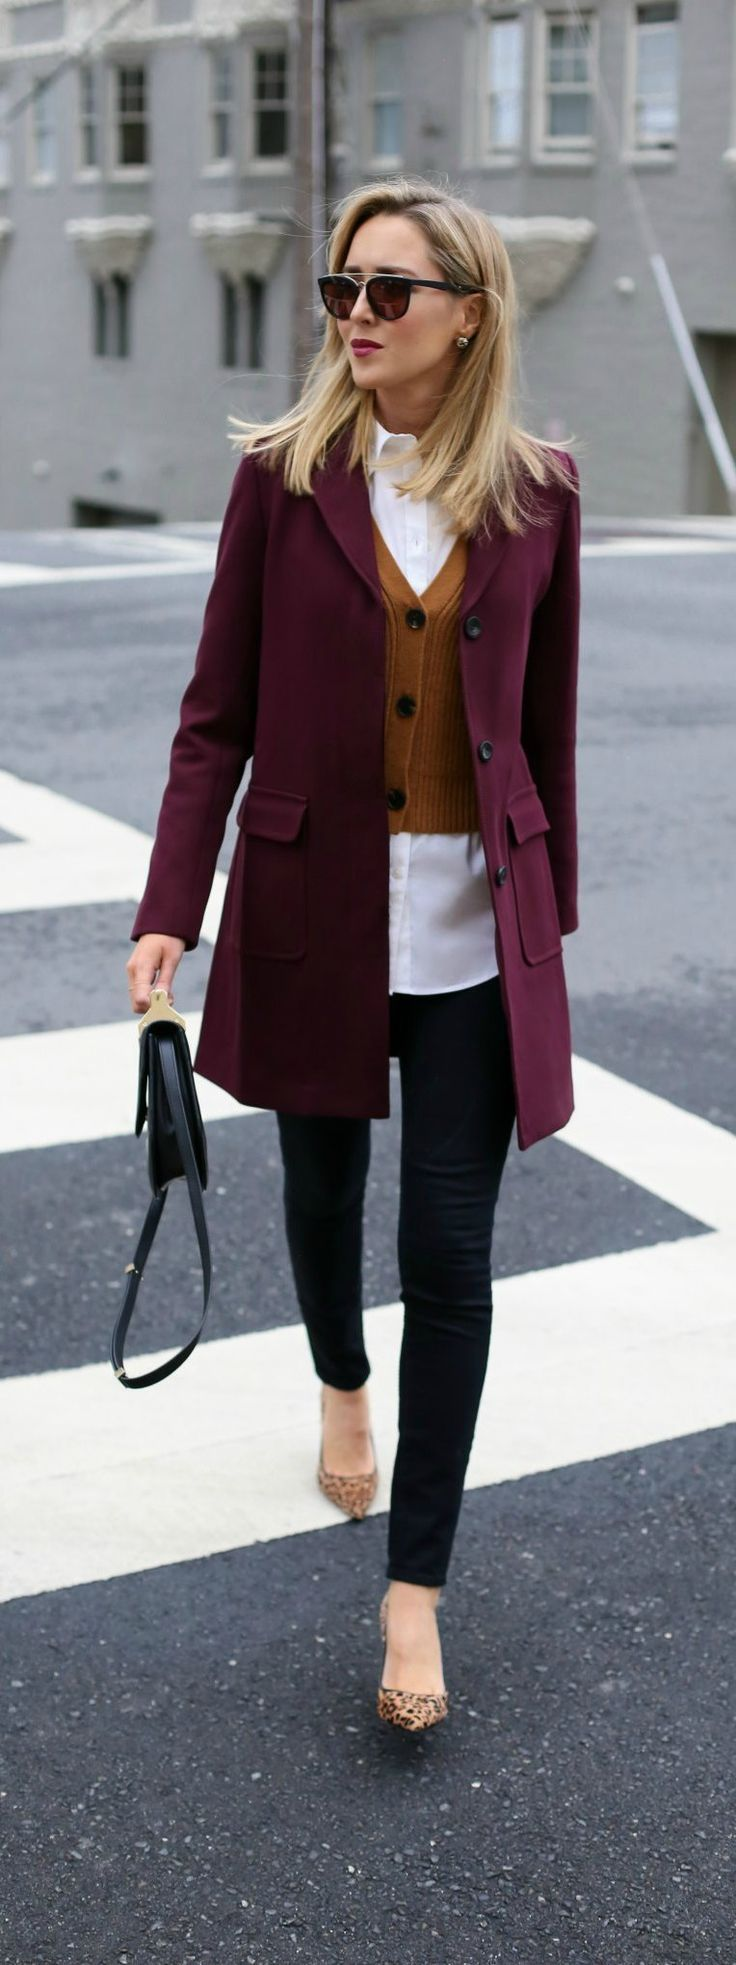 So put together. You can never have enough maroon coats!